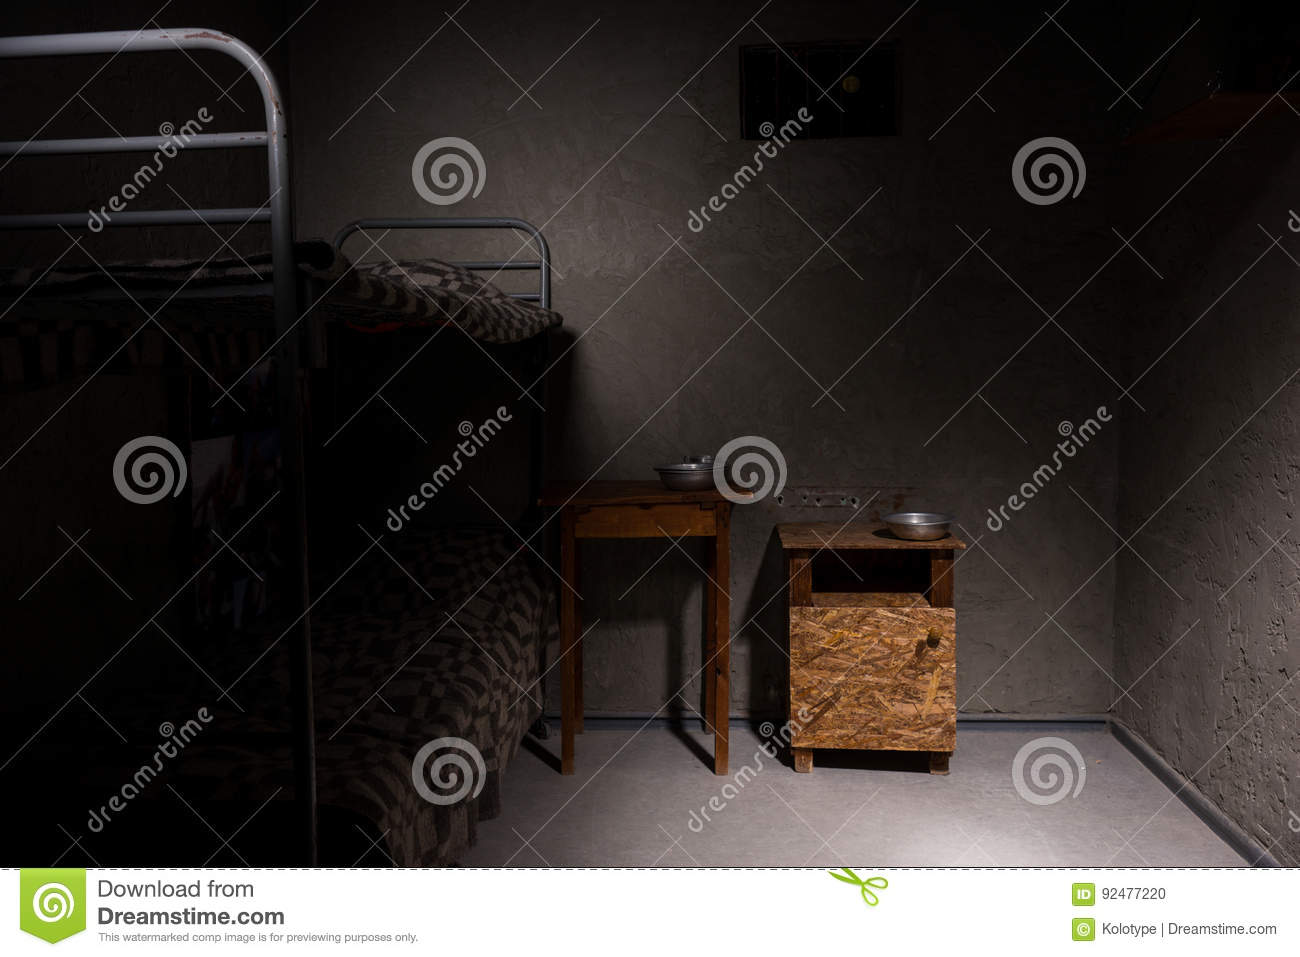 An Empty Prison Cell With Bunk Bed And Bedside Table Stock Photo